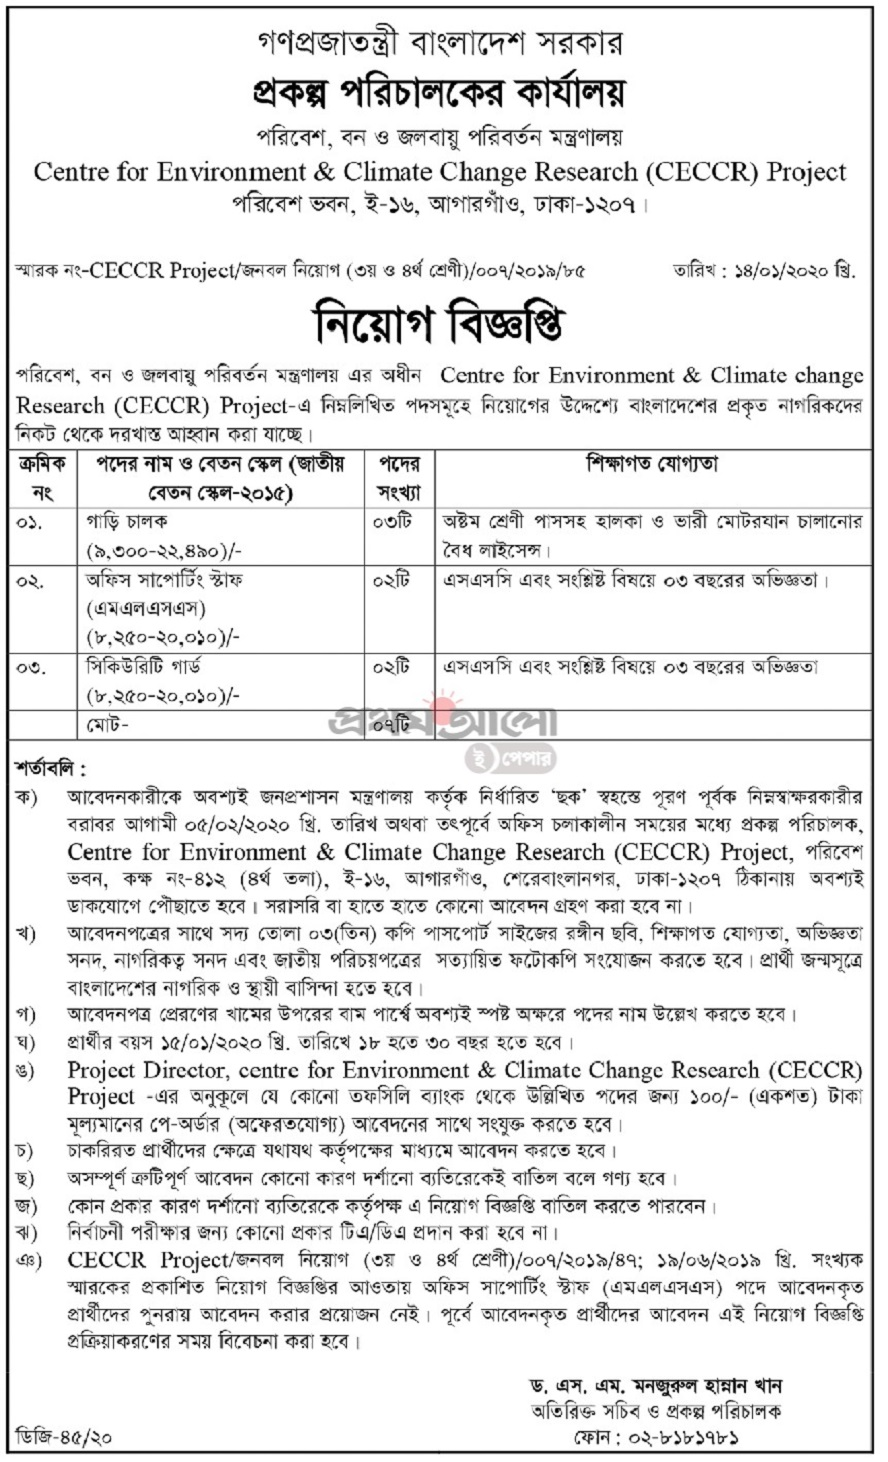 Ministry of Environment and Forests Job Circular 2020